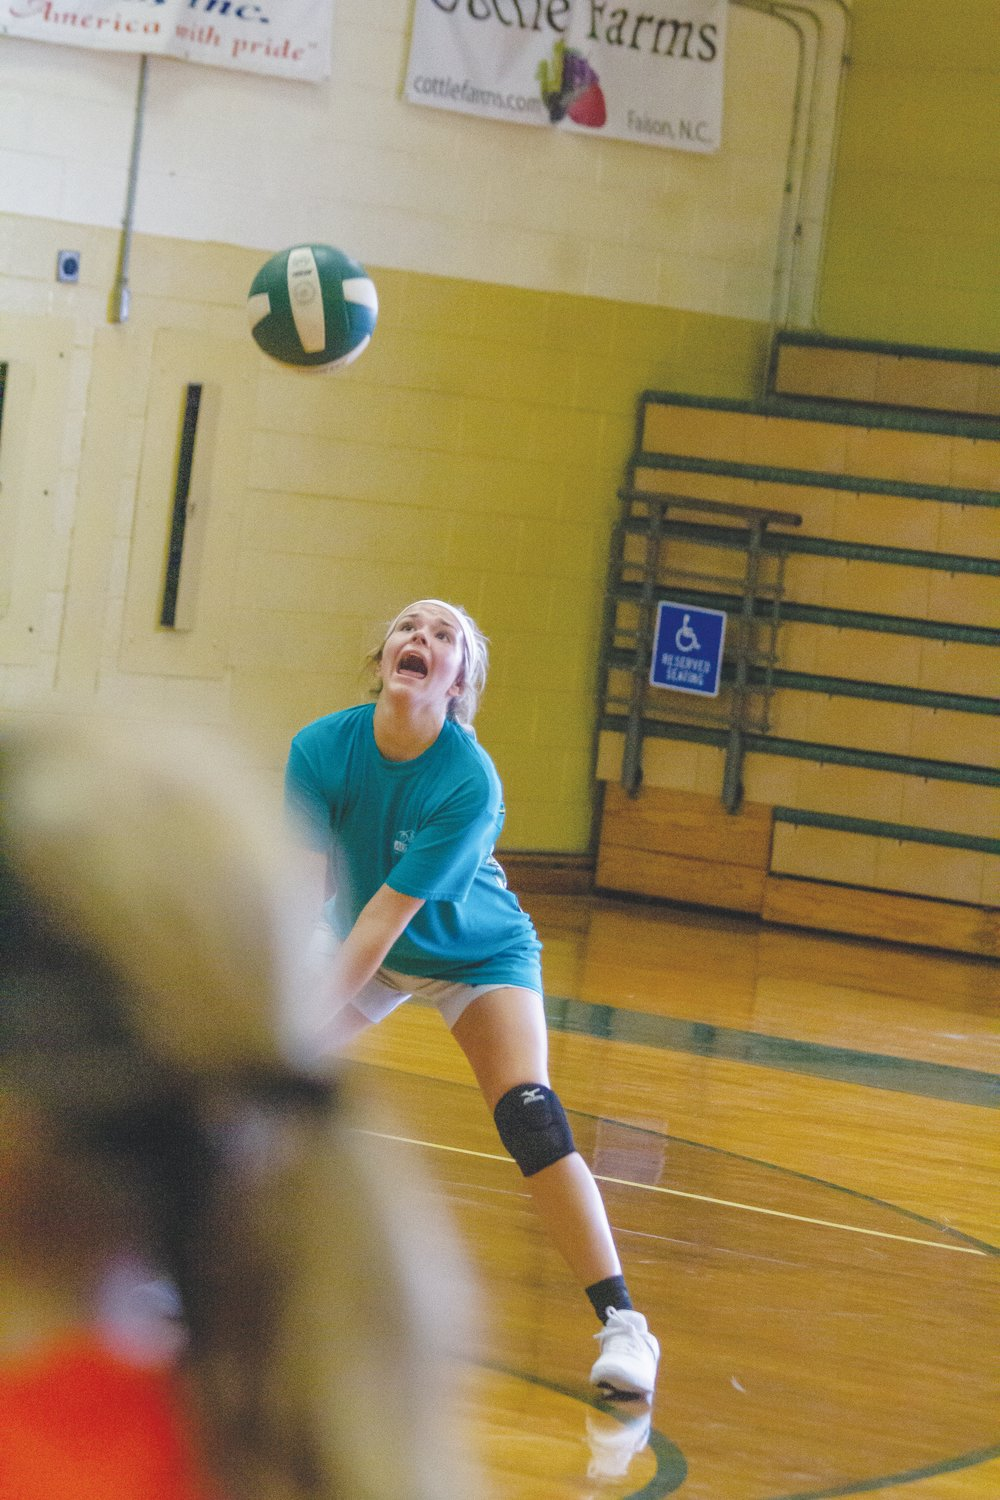 Logan Rae Jones communicates with her teammates as she sets up to hit the ball over the net during practice.